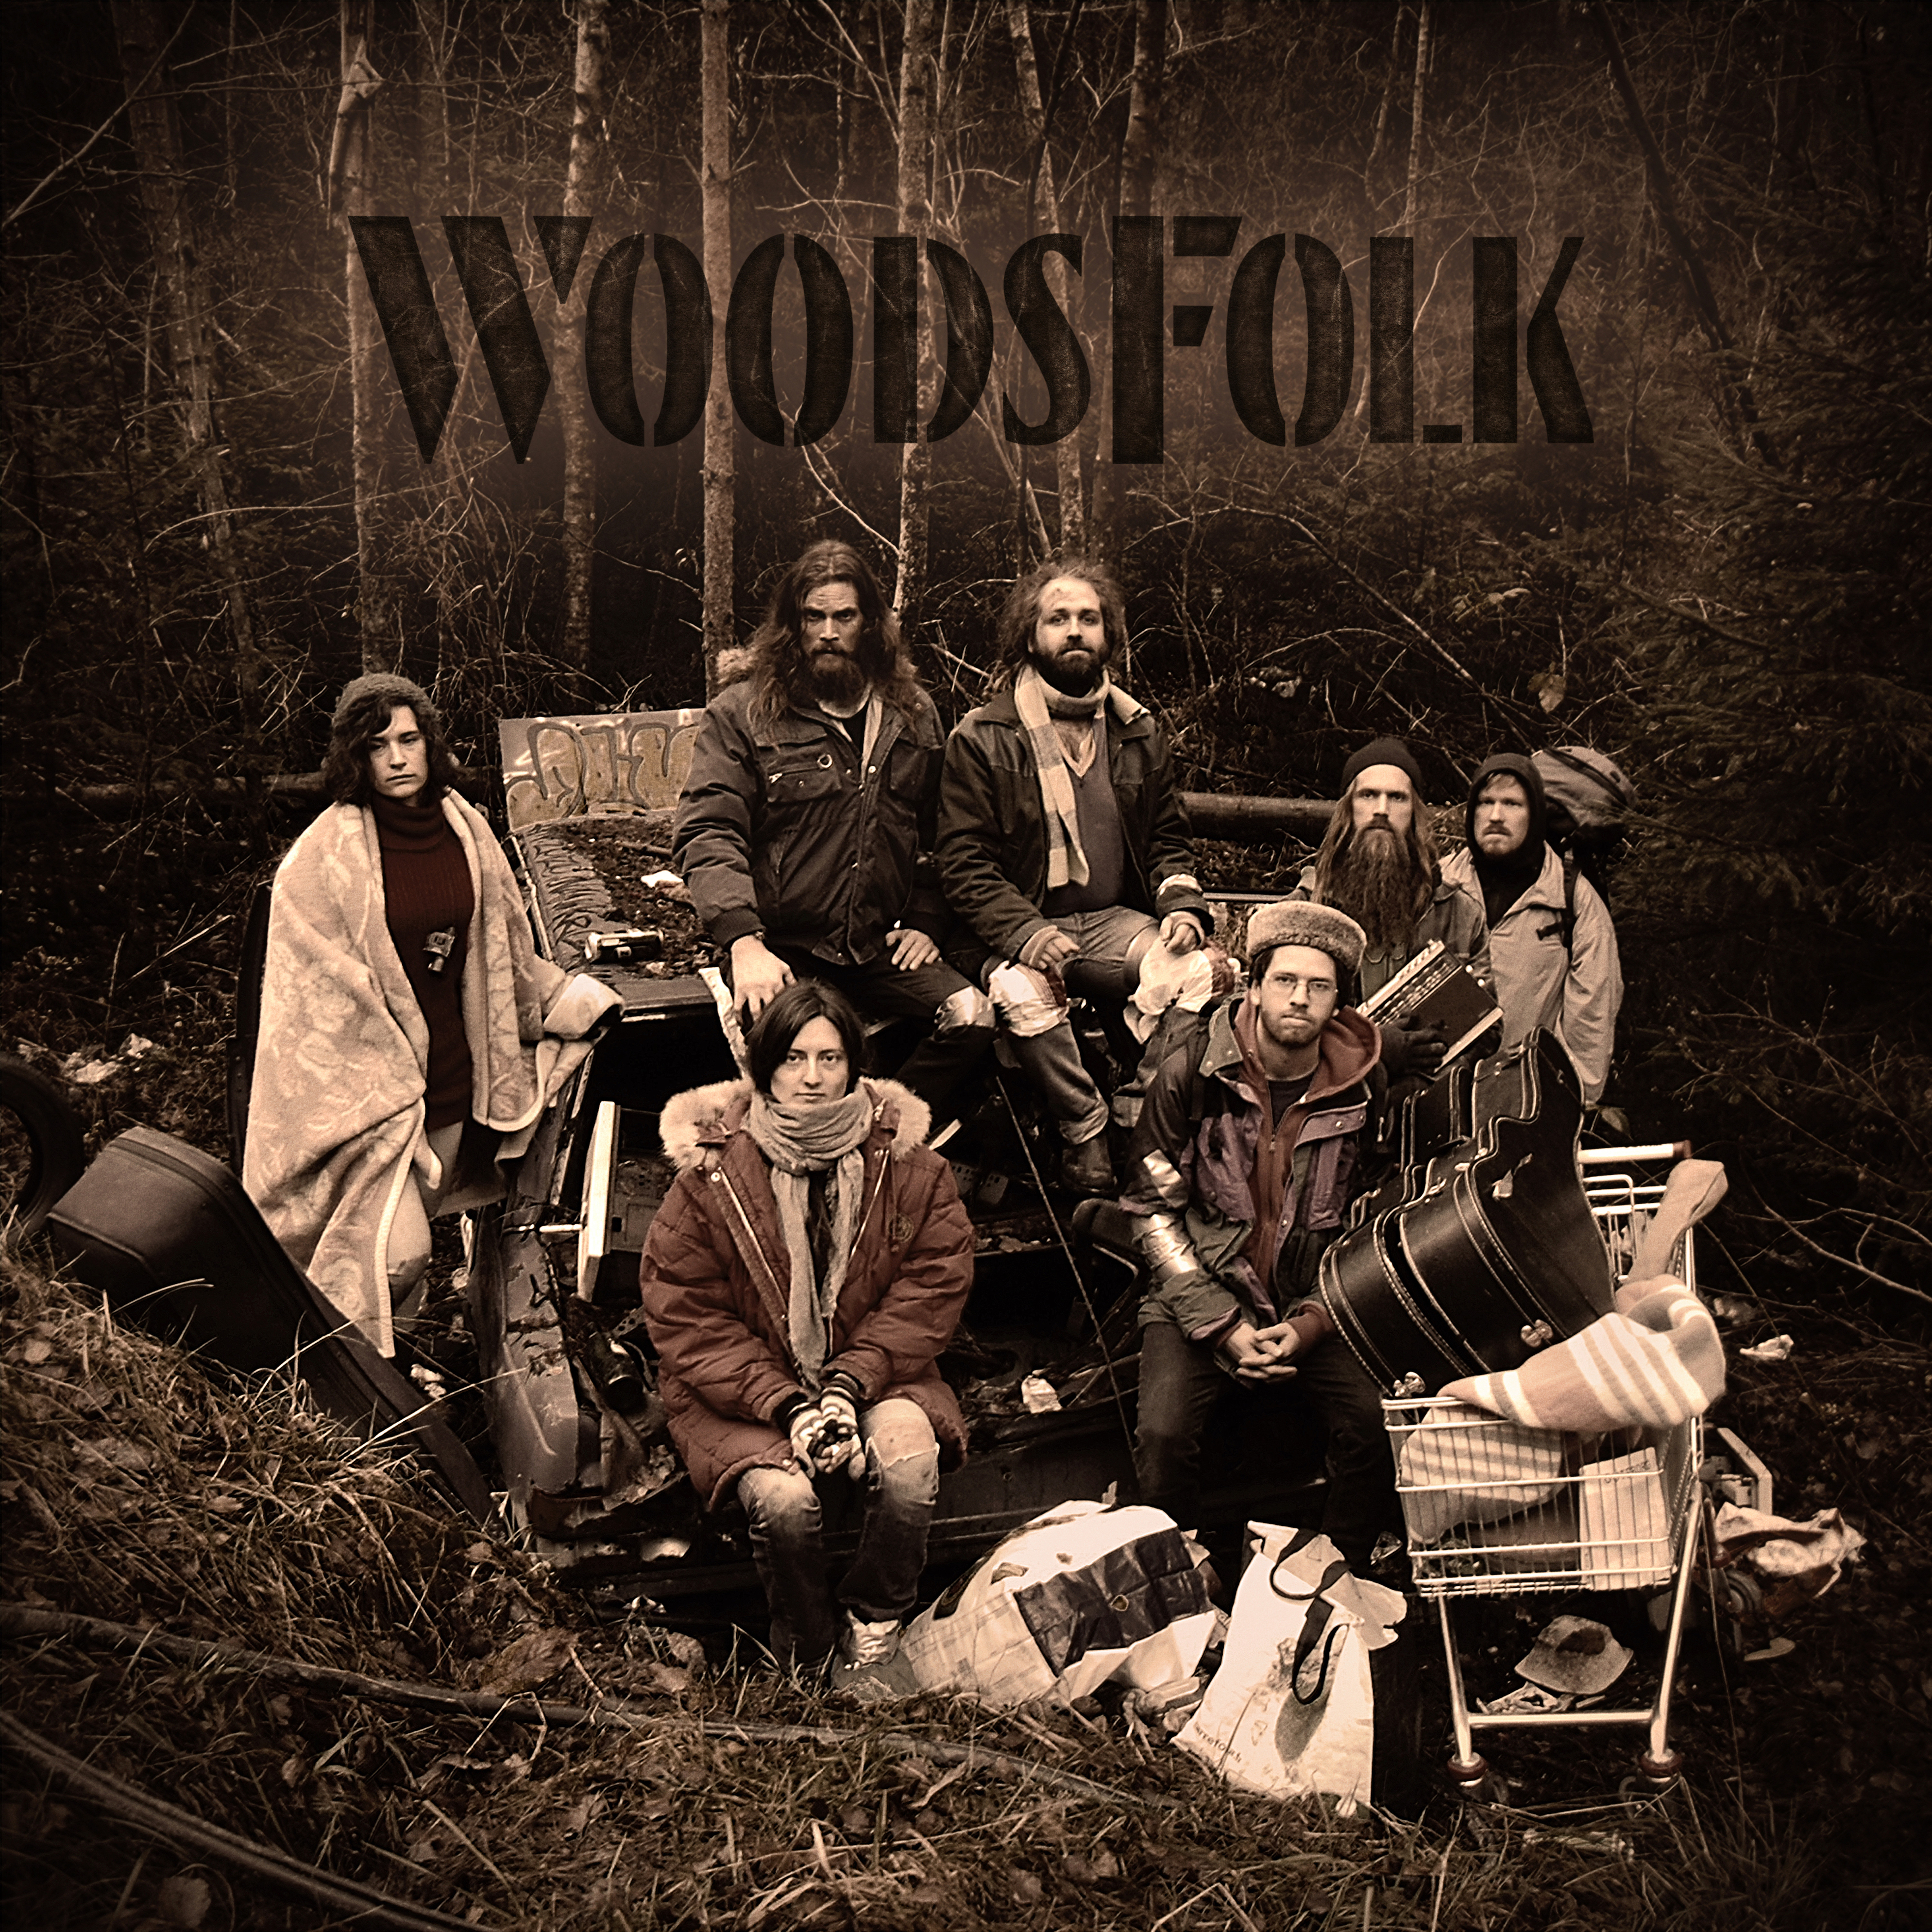 WoodsFolk their Debut Album is available on CDon.com